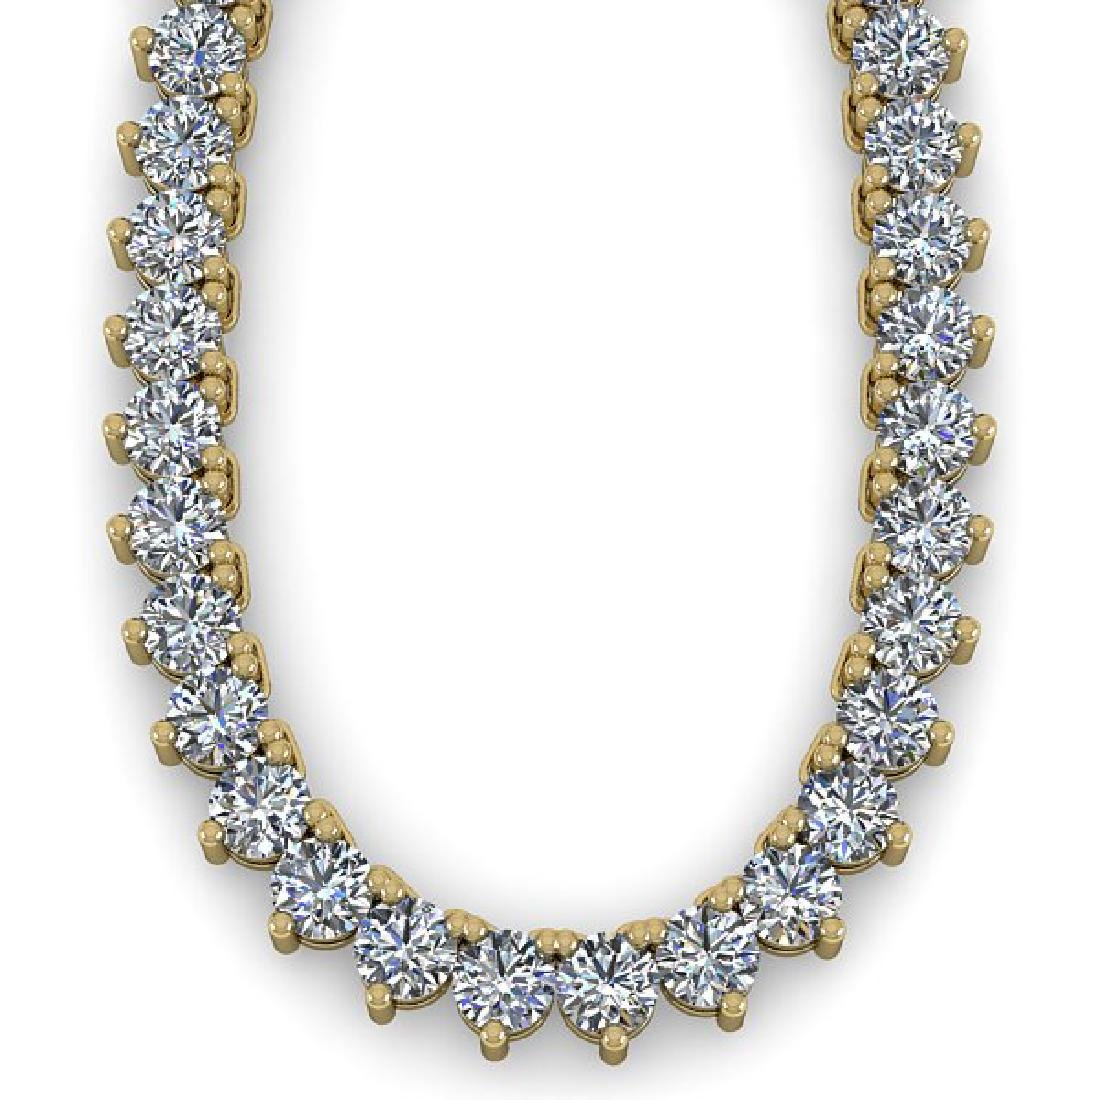 38 CTW Solitaire SI Diamond Necklace 18K Yellow Gold - 2